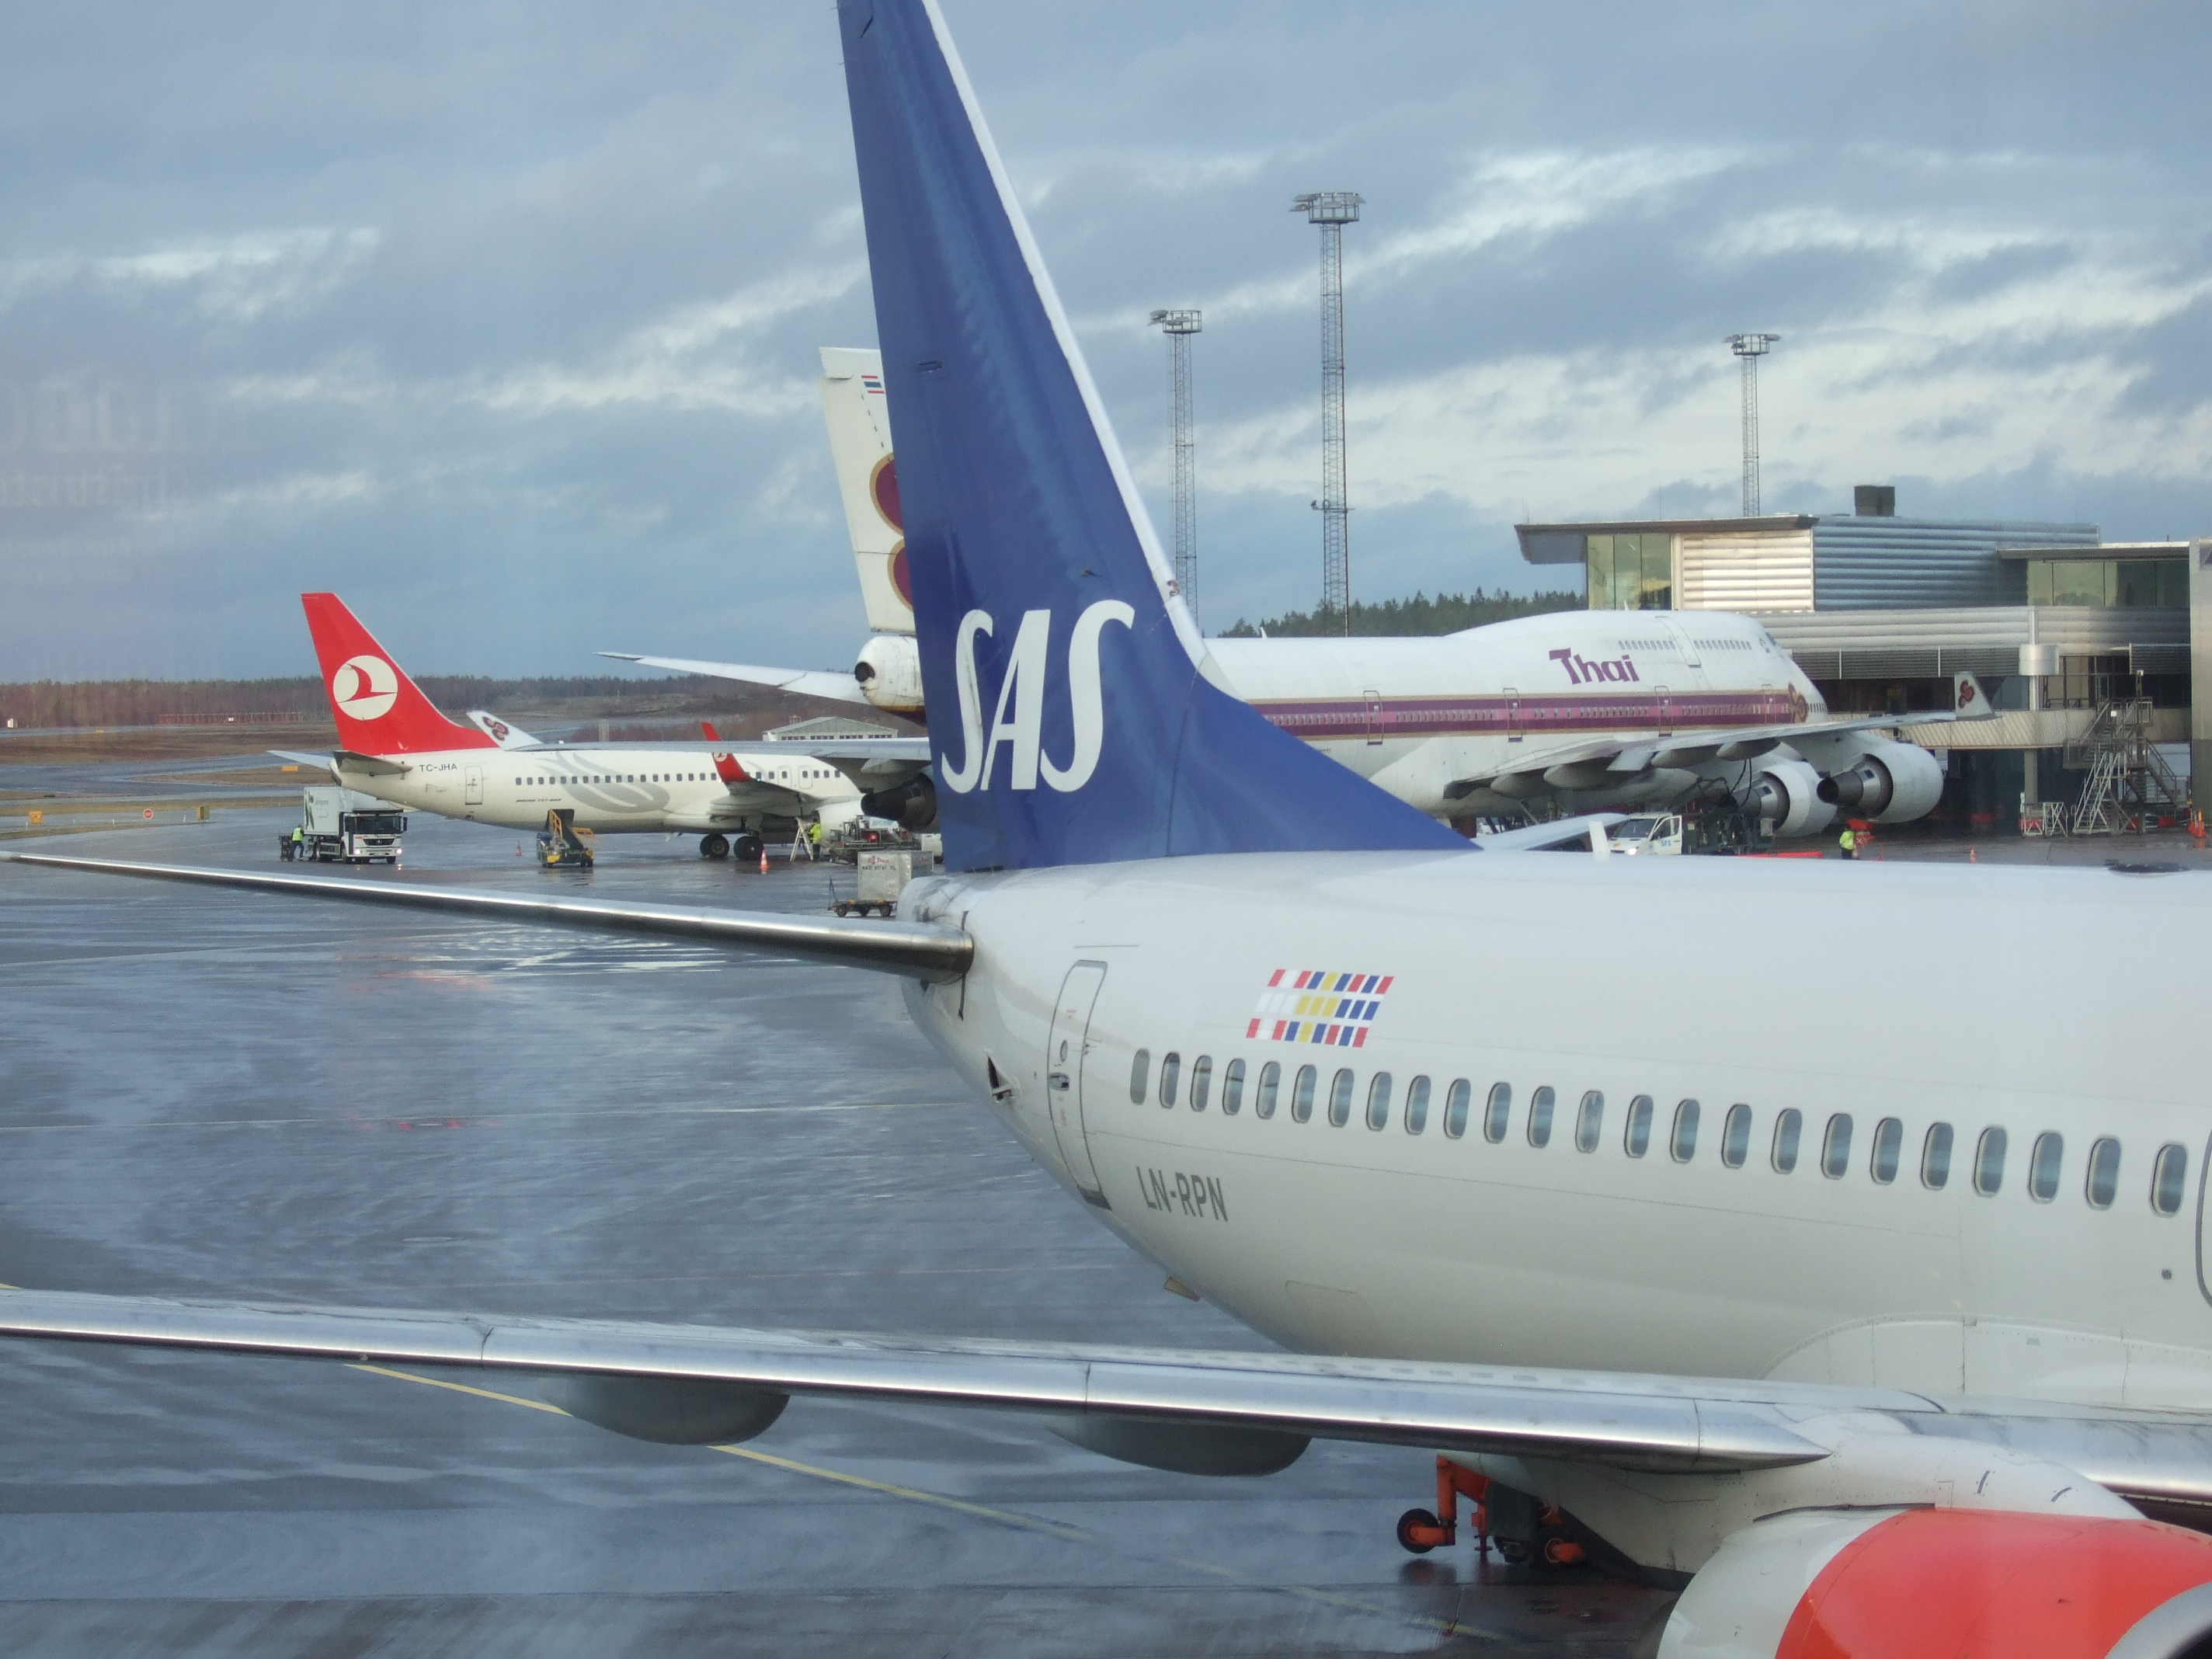 Arlanda Sweden  city pictures gallery : ... Aeroplanes parked at Stockholm Arlanda Airport, Sweden 20091123